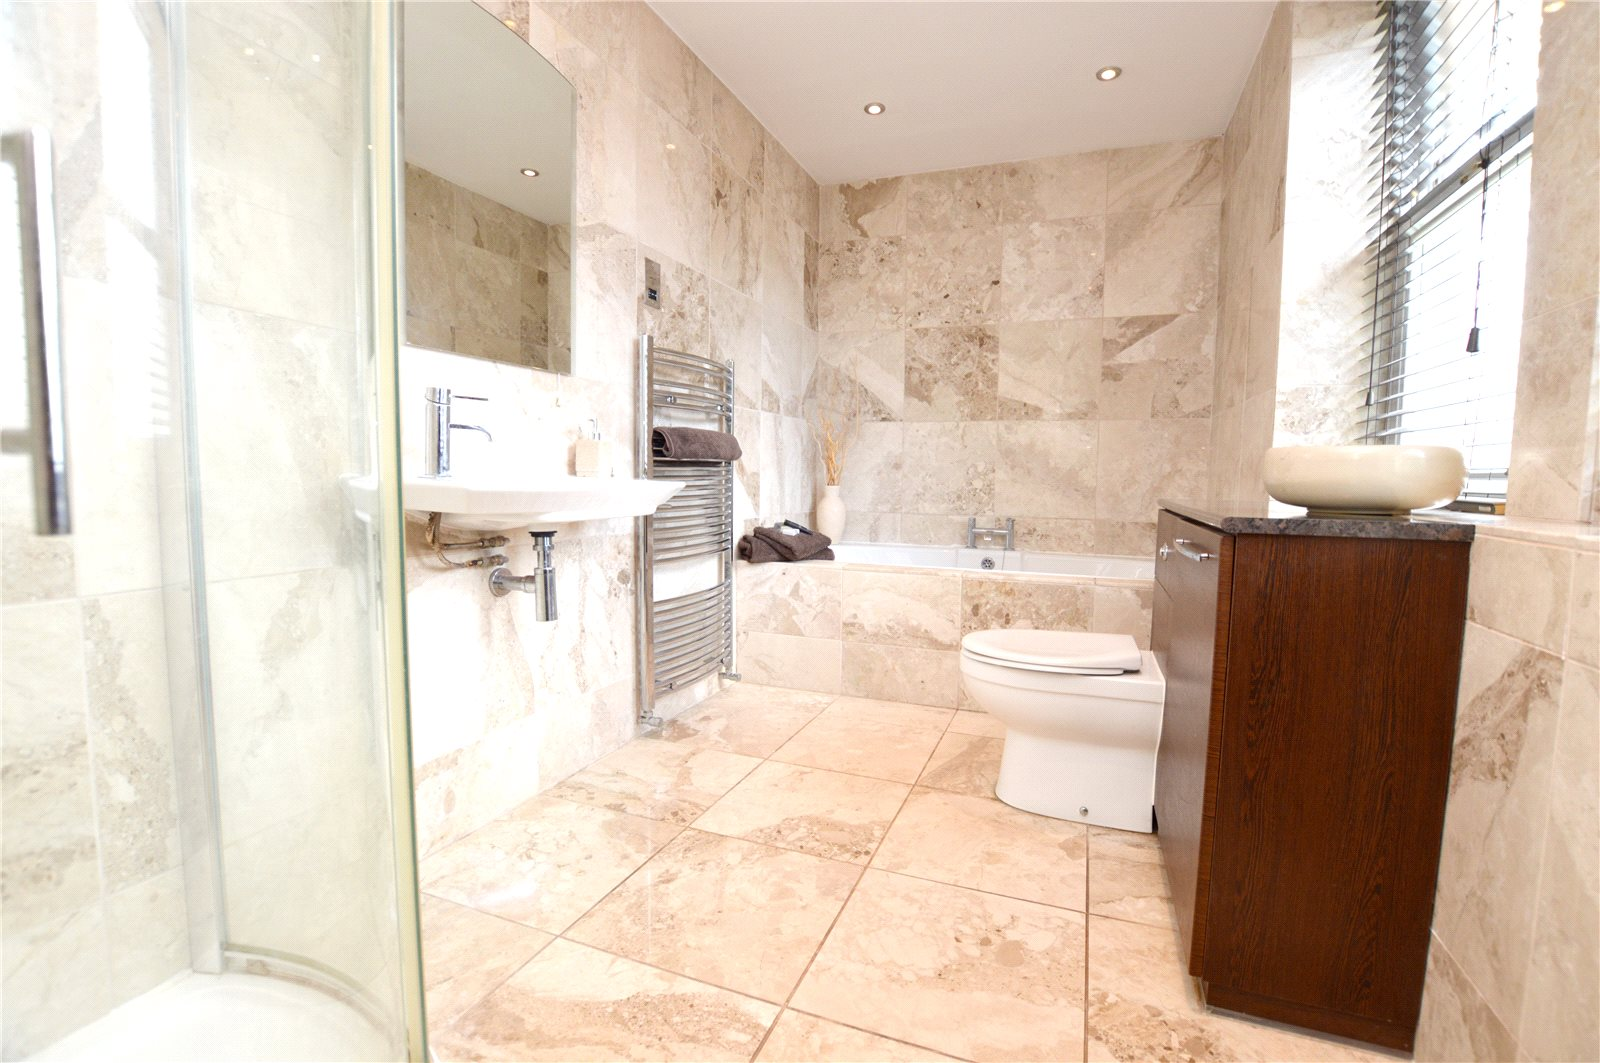 Property for sale in Pudsey, bathroom, beautiful and modern fitted